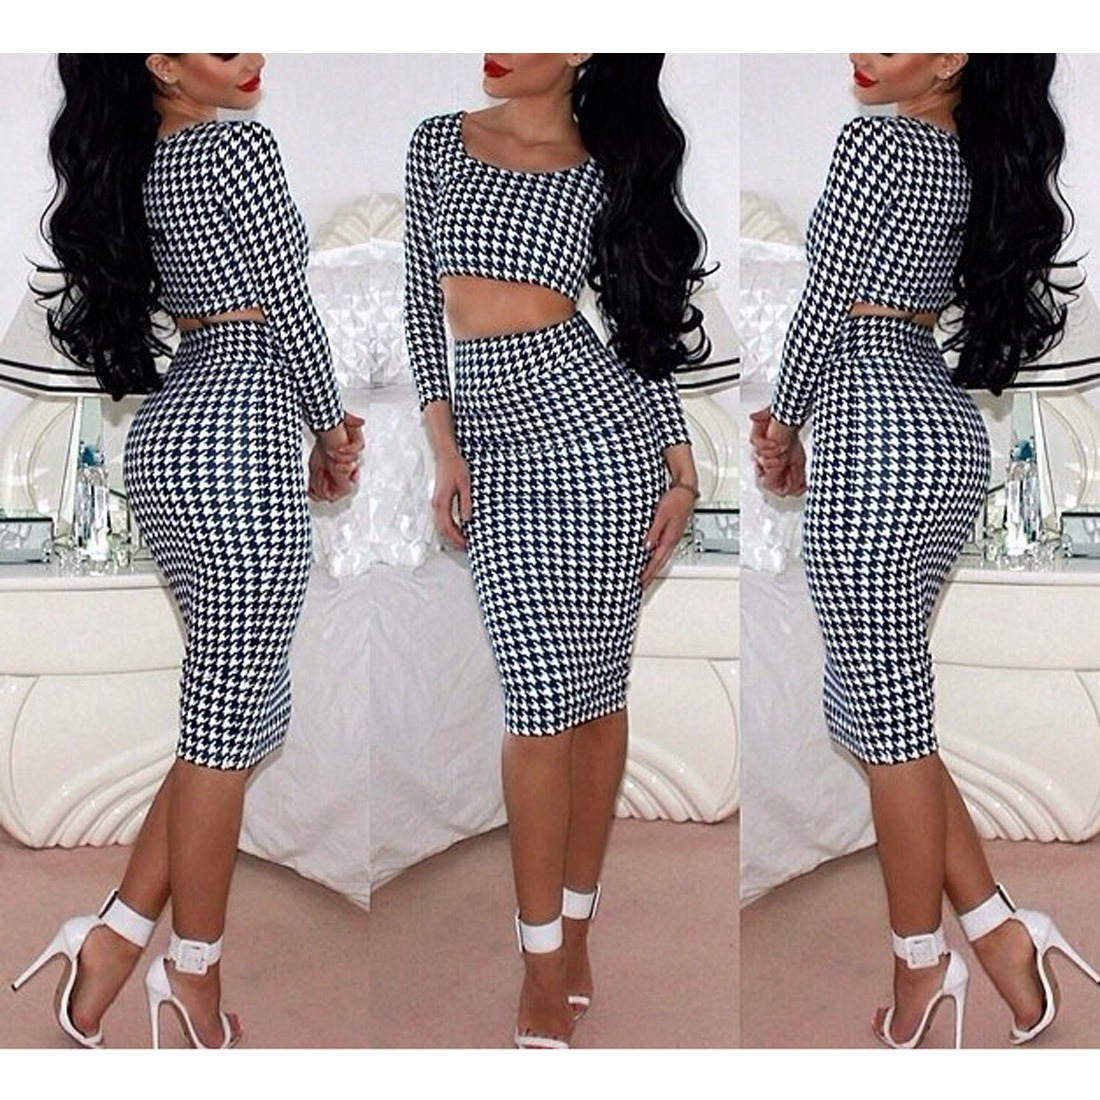 New Women Houndstooth Print Midriff Midi Skirt Tops Set Long Sleeve Slim Dress